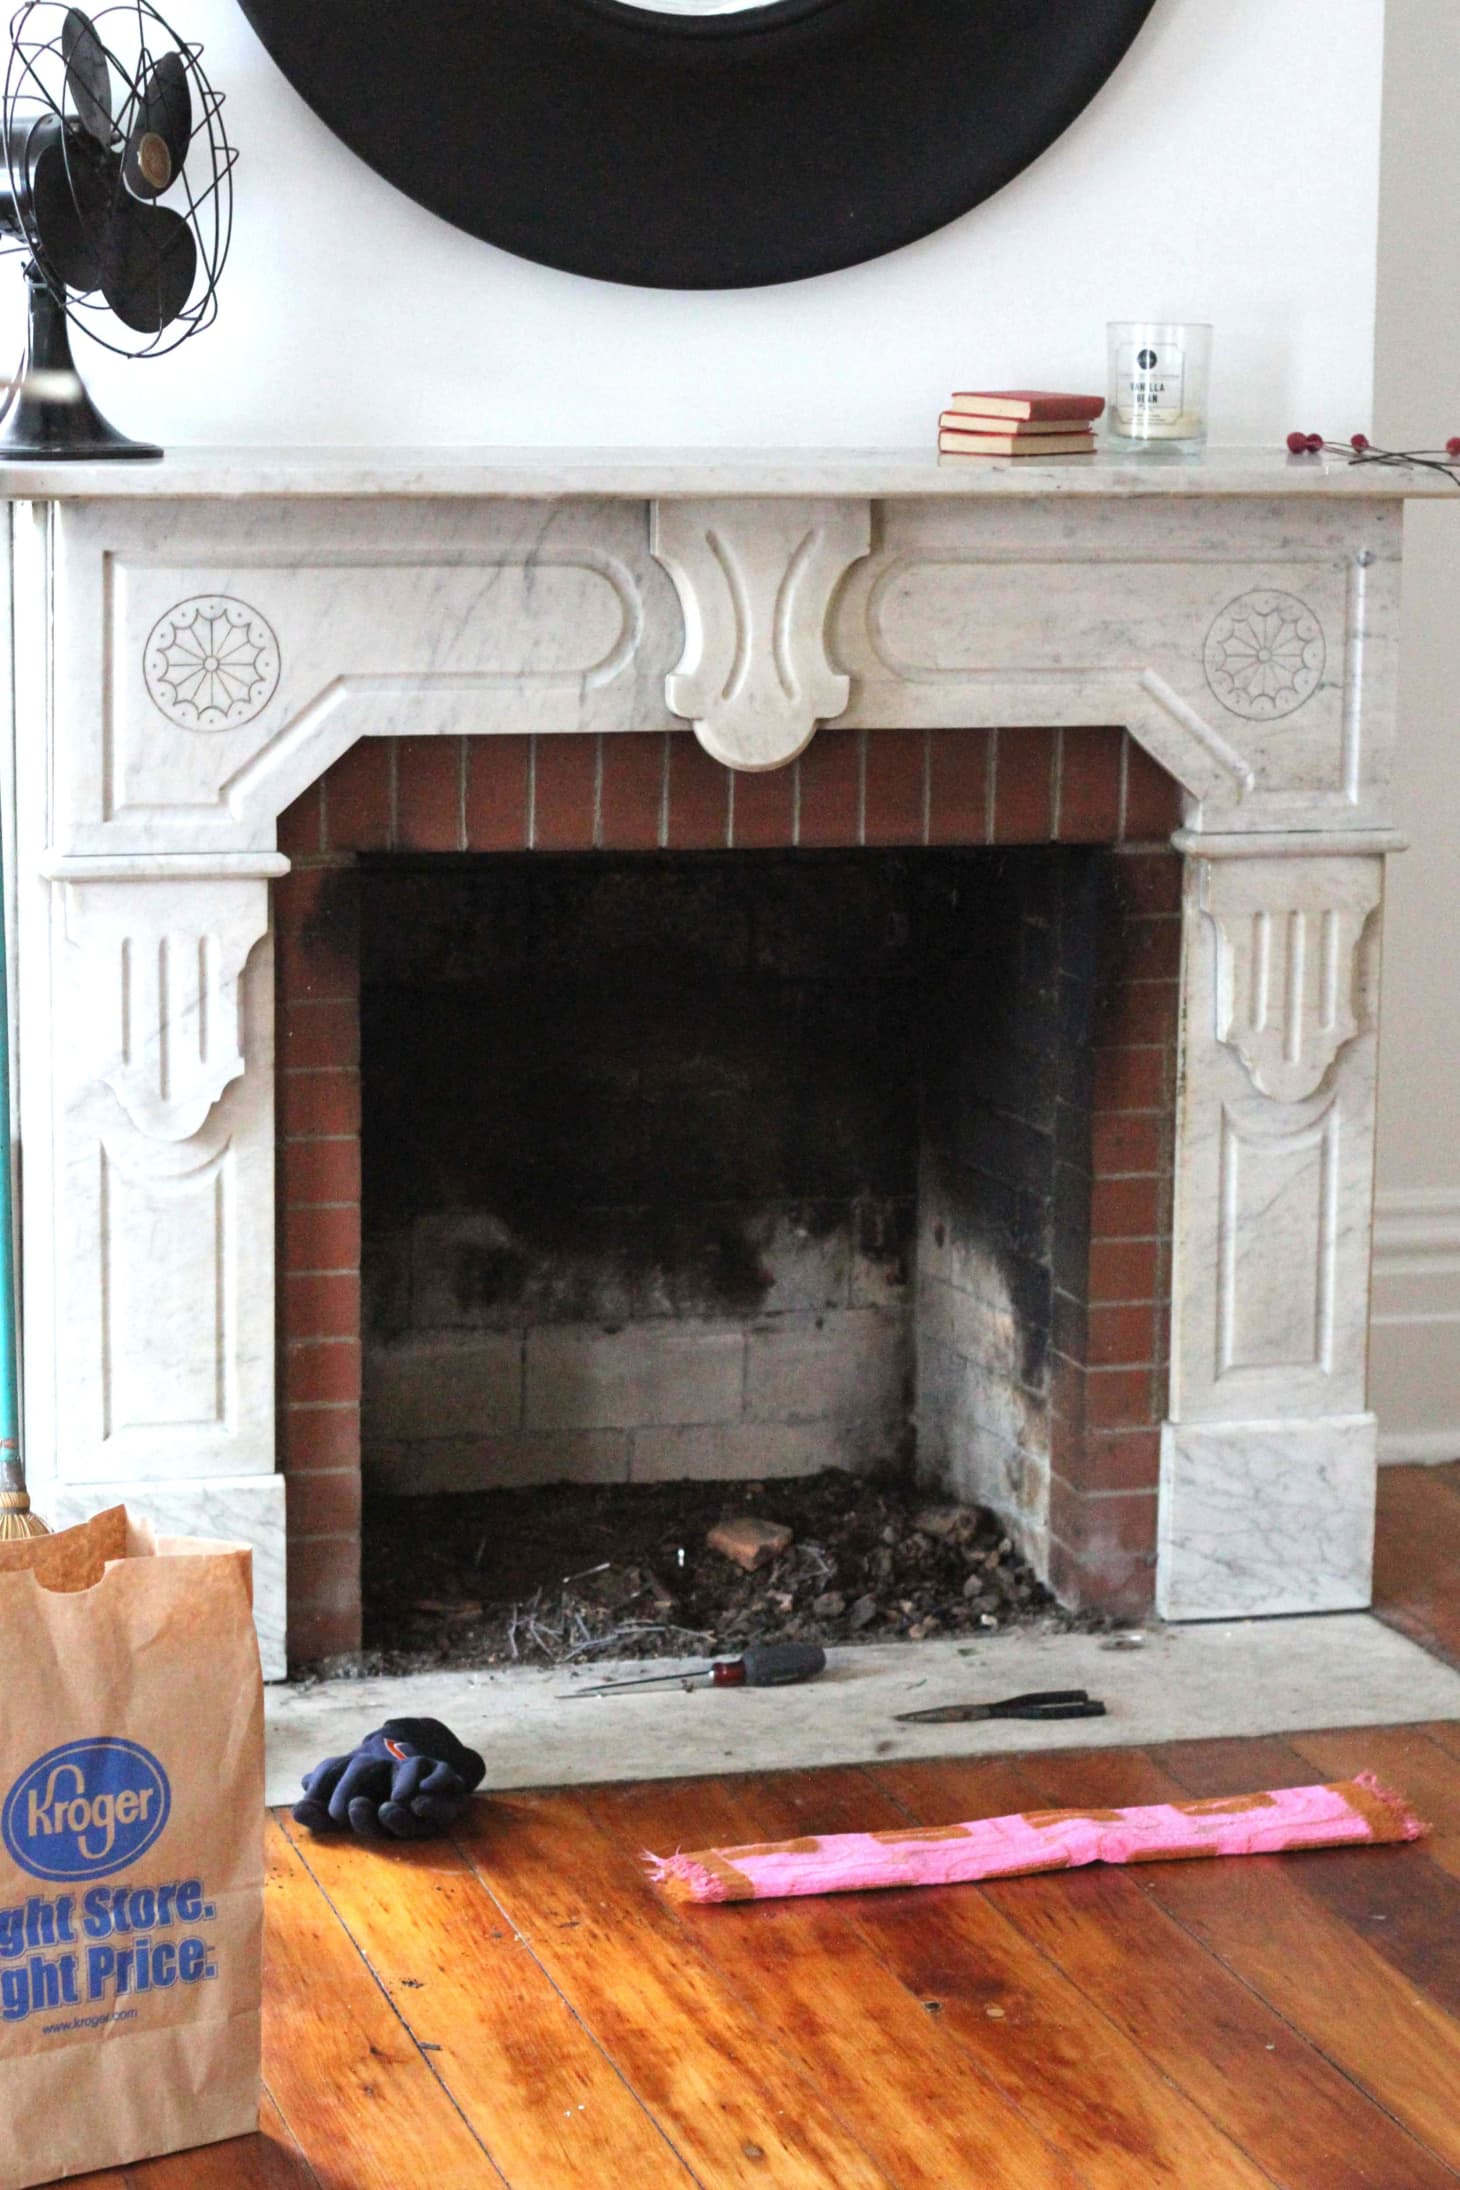 how to clean a brick fireplace with natural cleaners | apartment therapy